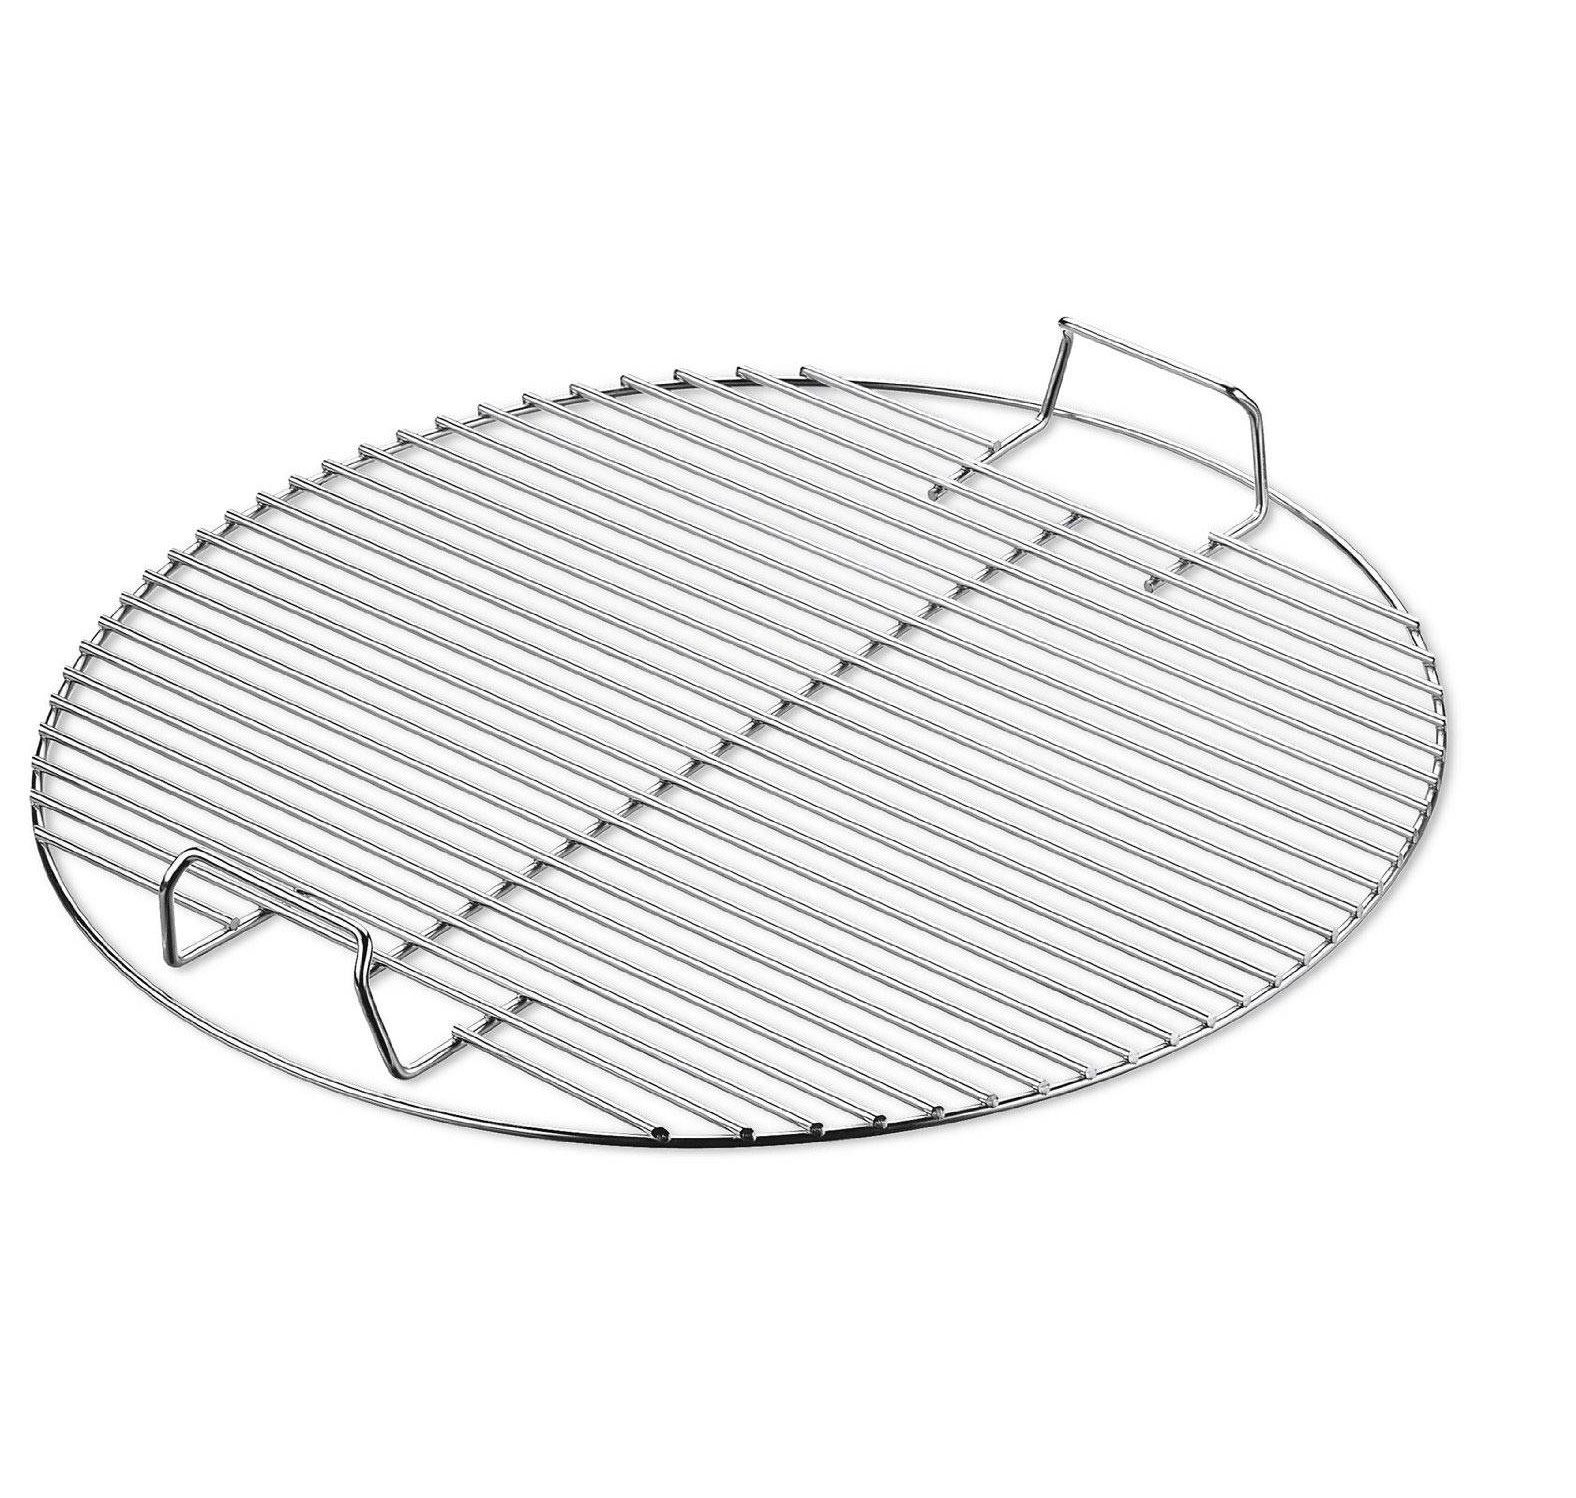 Weber cooking grate 8413